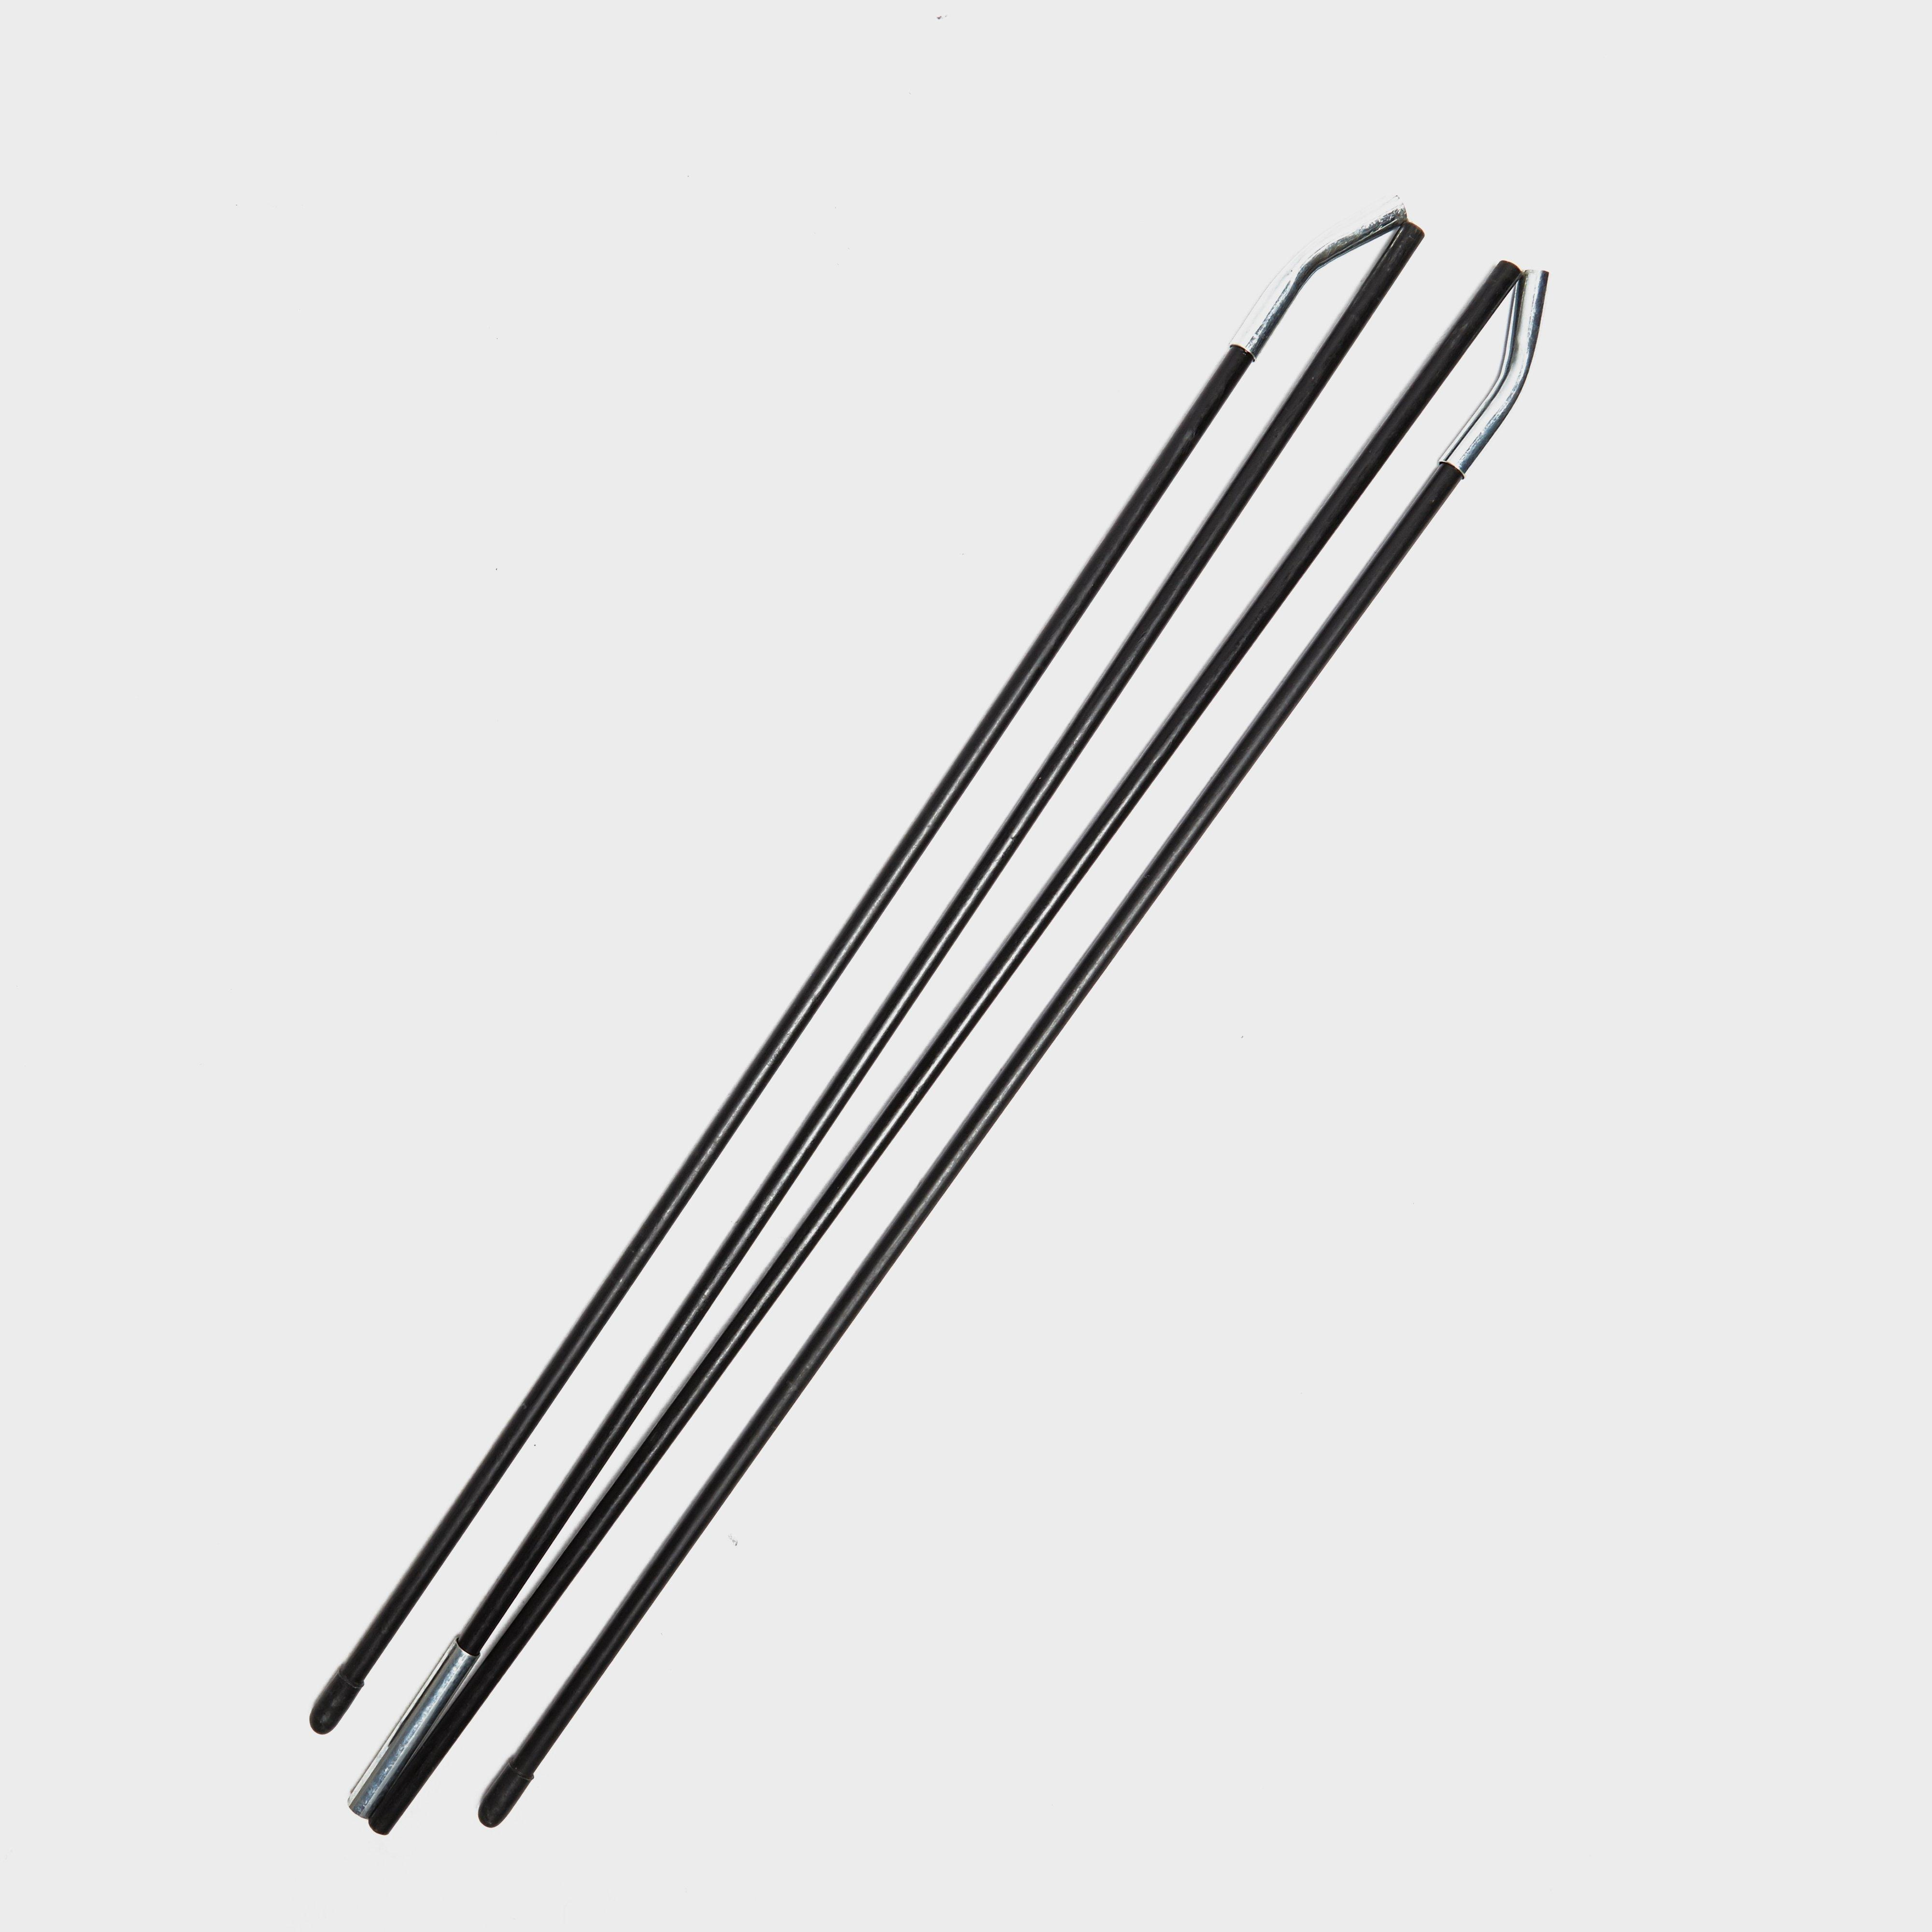 Air 4 Brow Tent Pole  sc 1 st  Millets & Tent Poles | Tent Pole Sections u0026 Sets | Millets